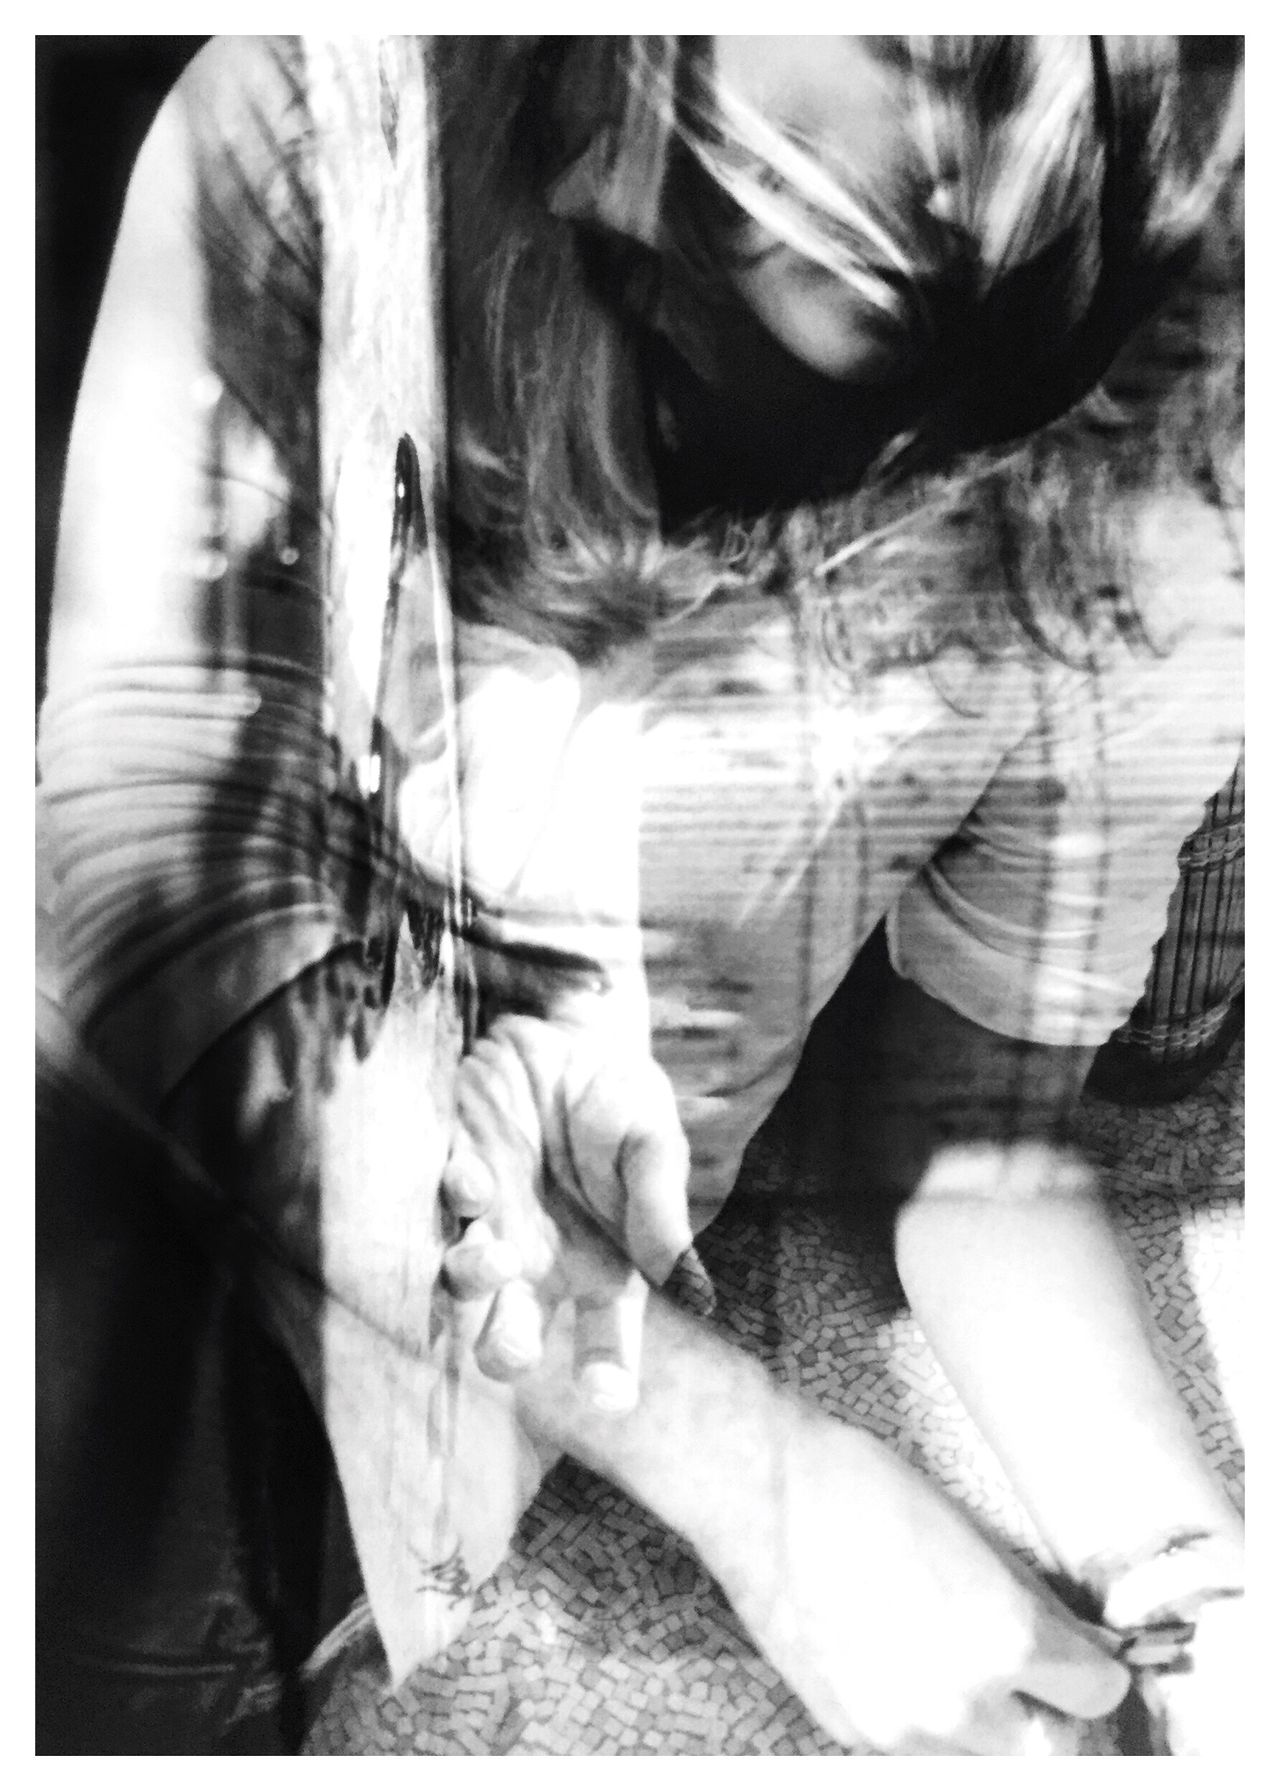 too deep. Conceptual Photography  Sandwiched Negatives Film Photography Double Exposure Conceptual Image Conceptual Self Portrait Contrast Story Photography Blackandwhitephotography Cutting Suicide Razorblade Wrist Cutting B&W_collection Inspired By Cindy Sherman Self Harm Mutilation Suicidal Slit Wrists Blood Bleeding Blood Loss Kodak TMax 100 Filmphotography Canon_photos